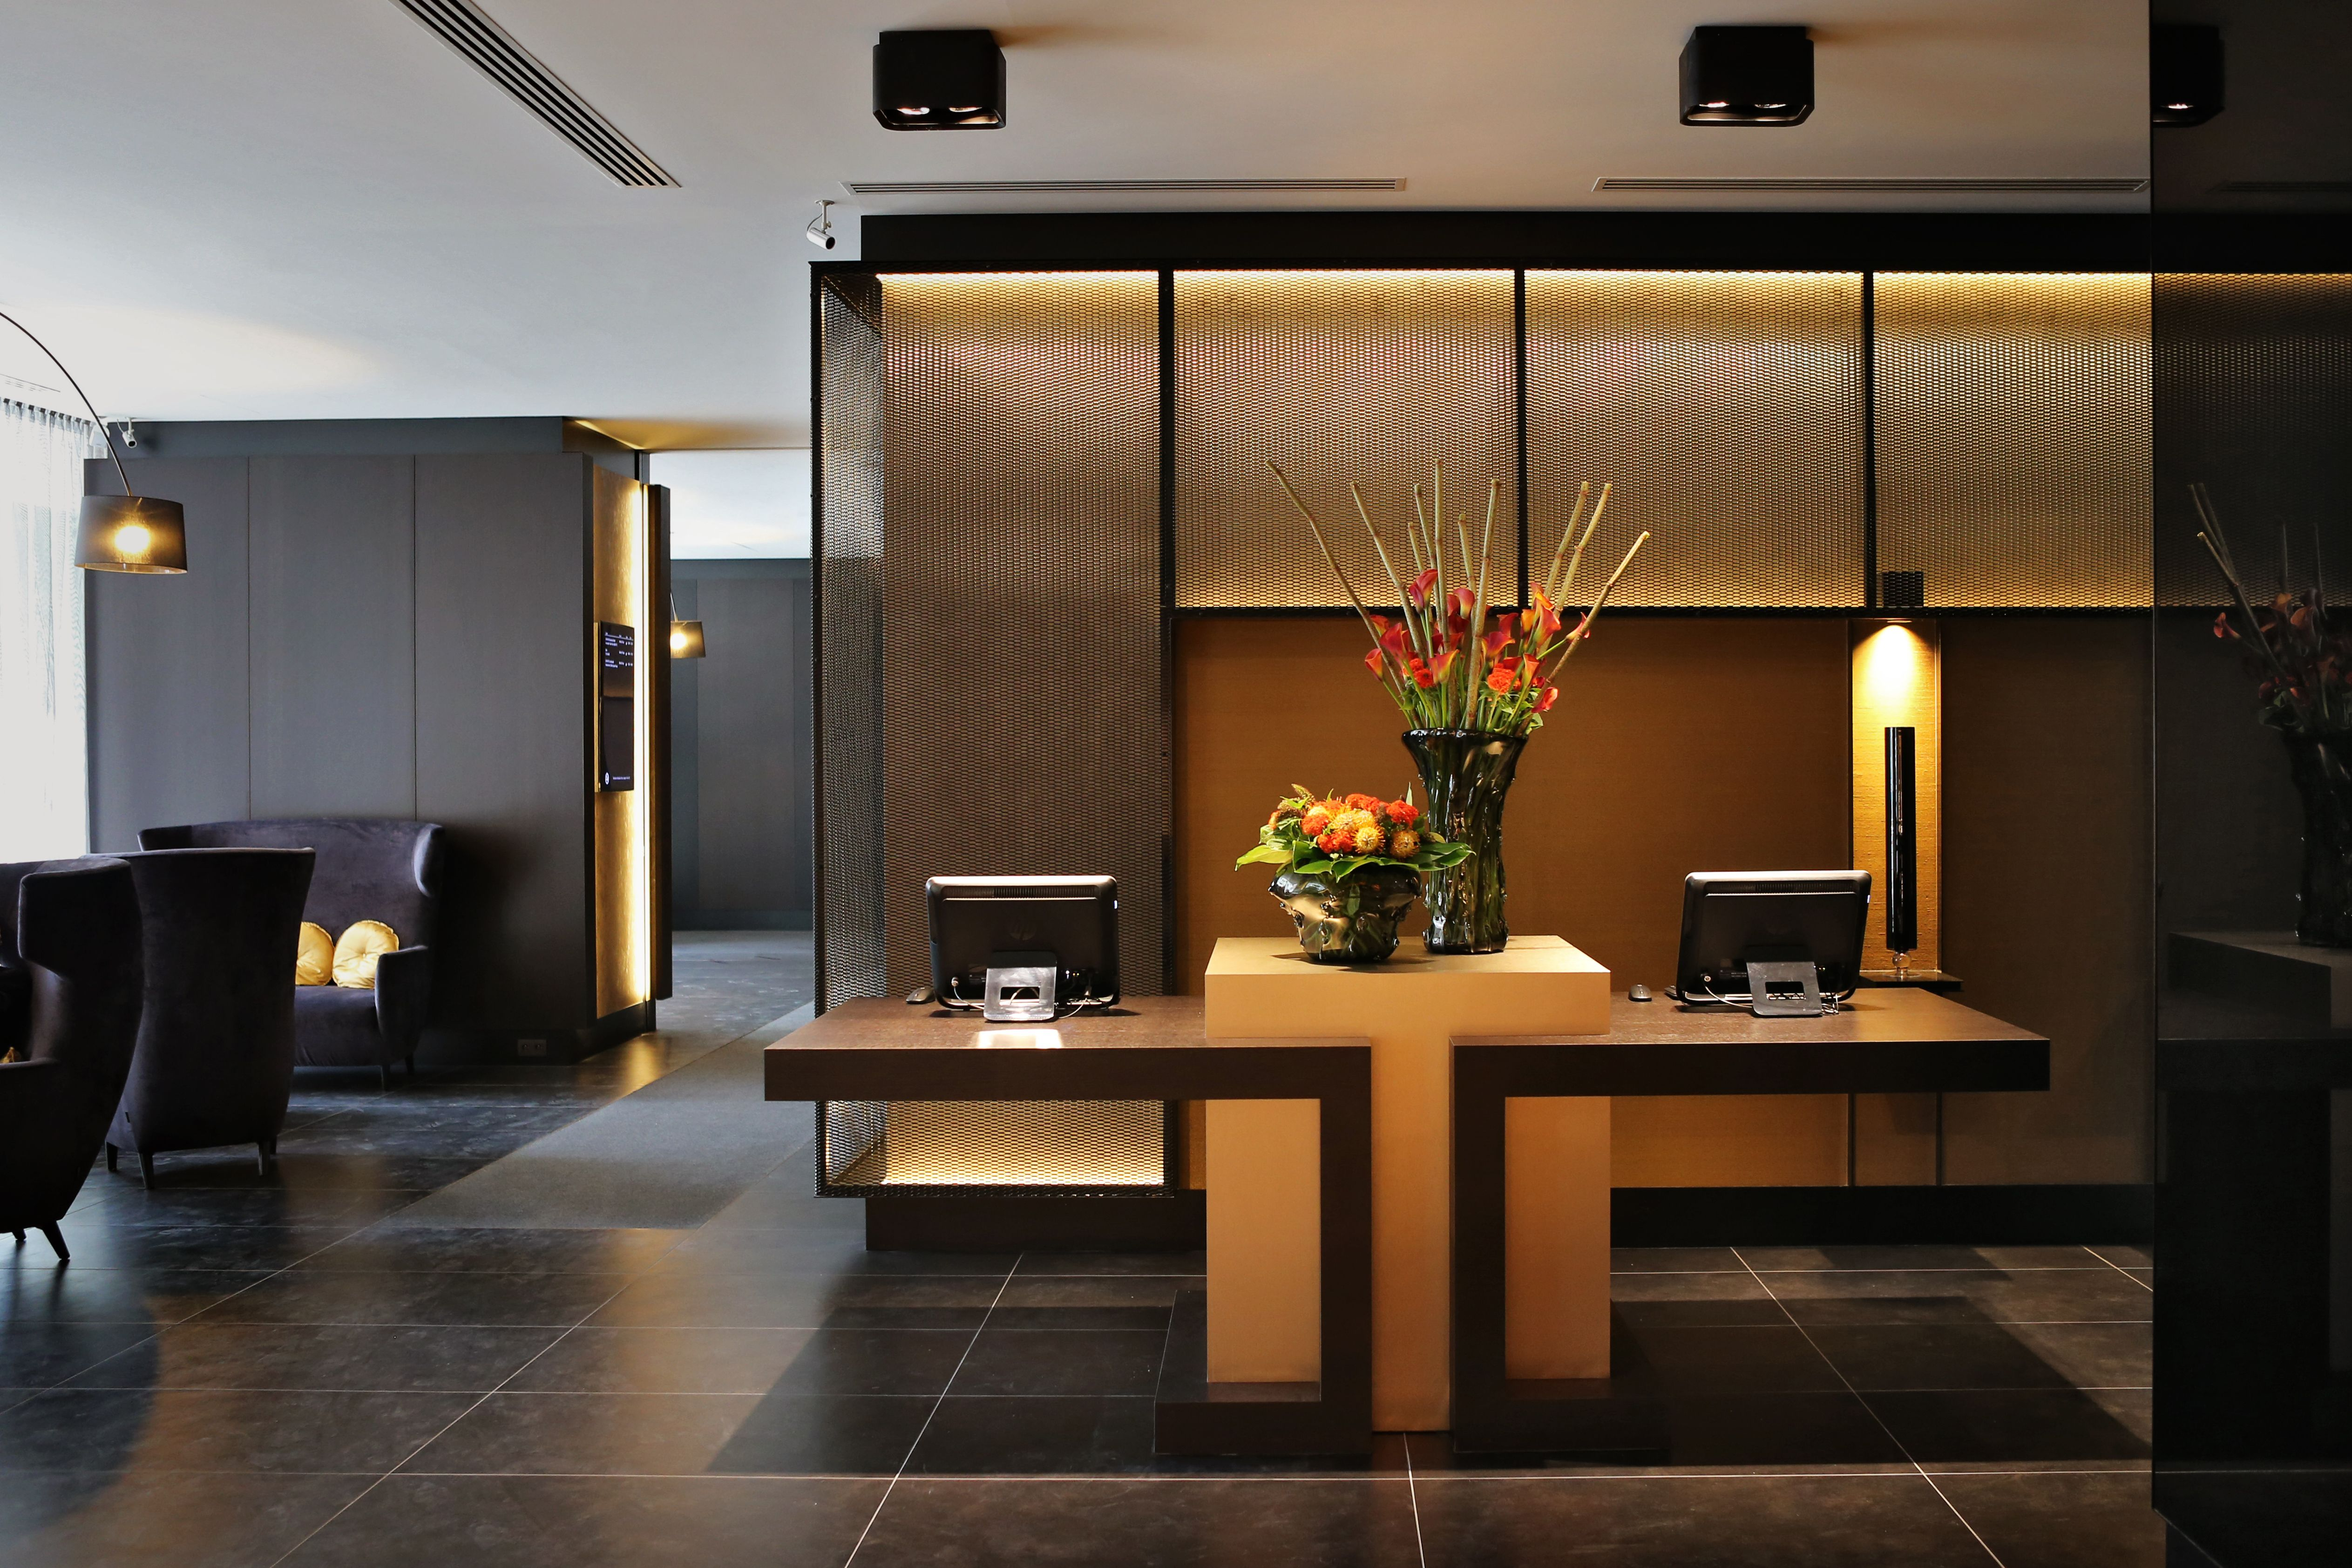 Lobby hotel brussels reception desk millwork and backdrop